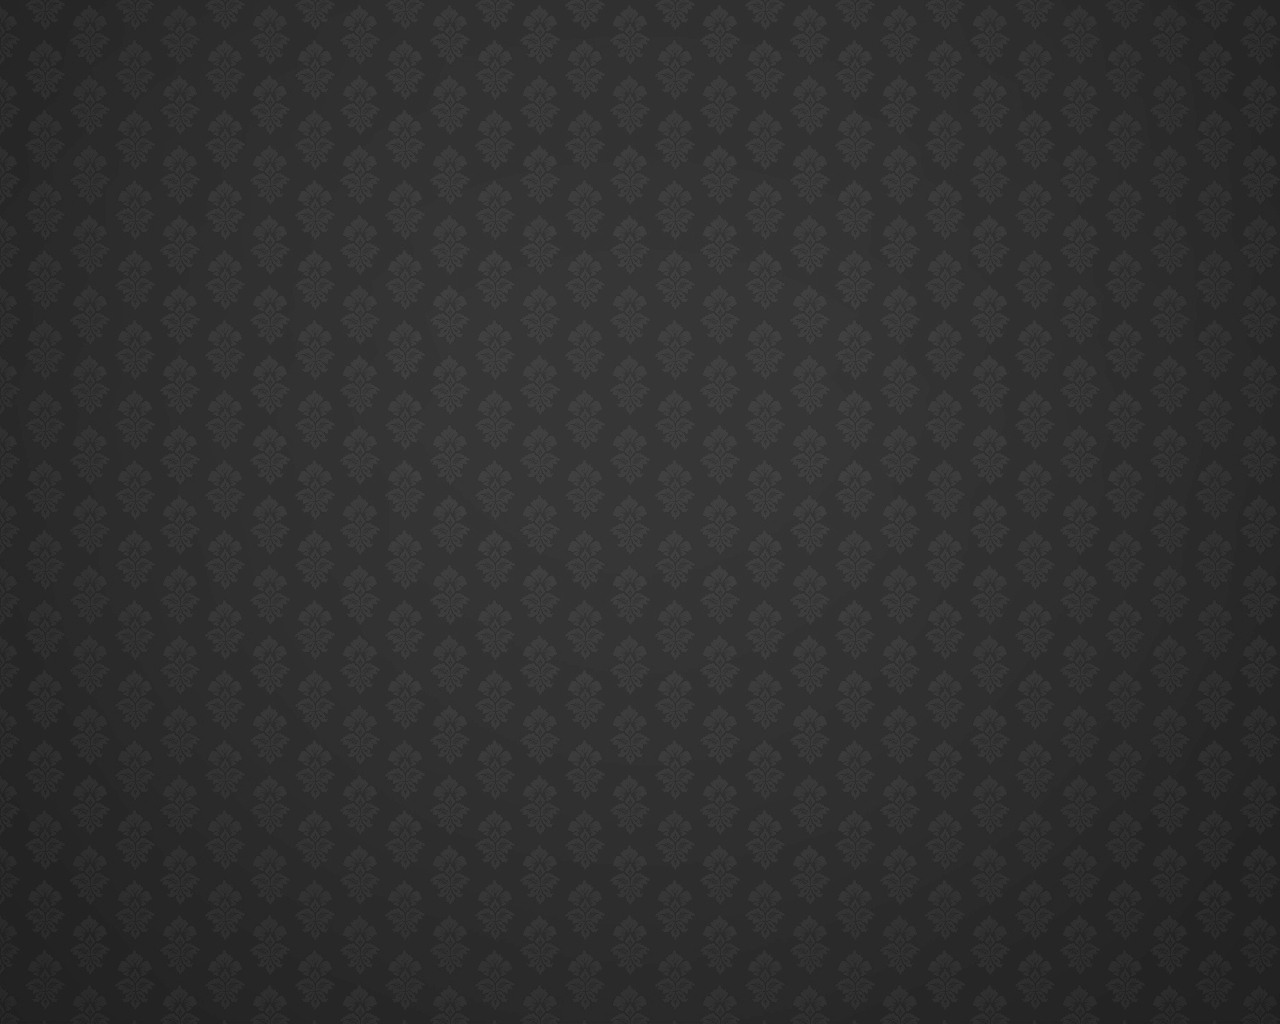 Grey backgrounds black shade wallpaper Full HD Wallpapers Points 1280x1024